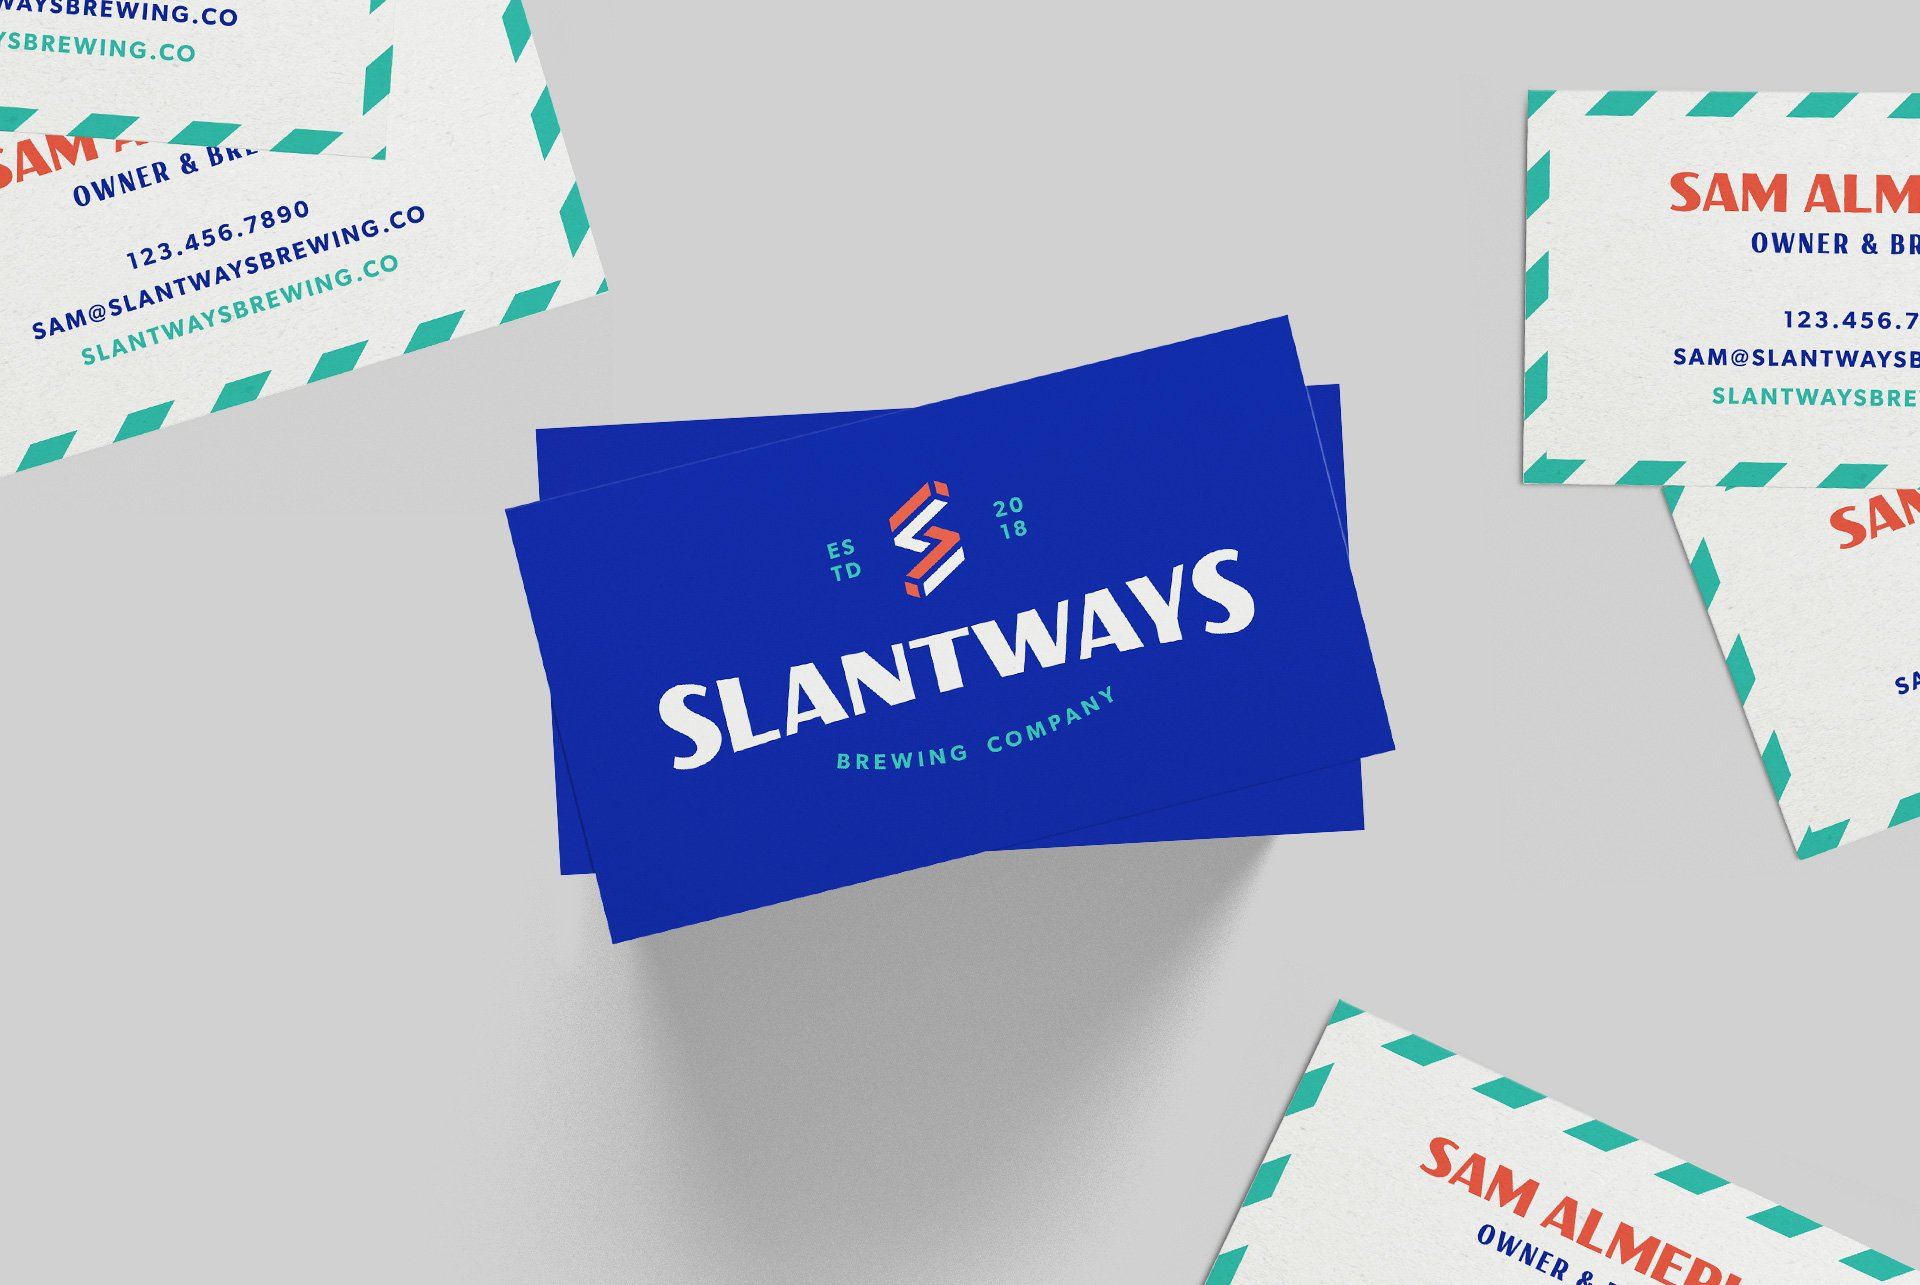 Slantways Brewing Company Business Card Design